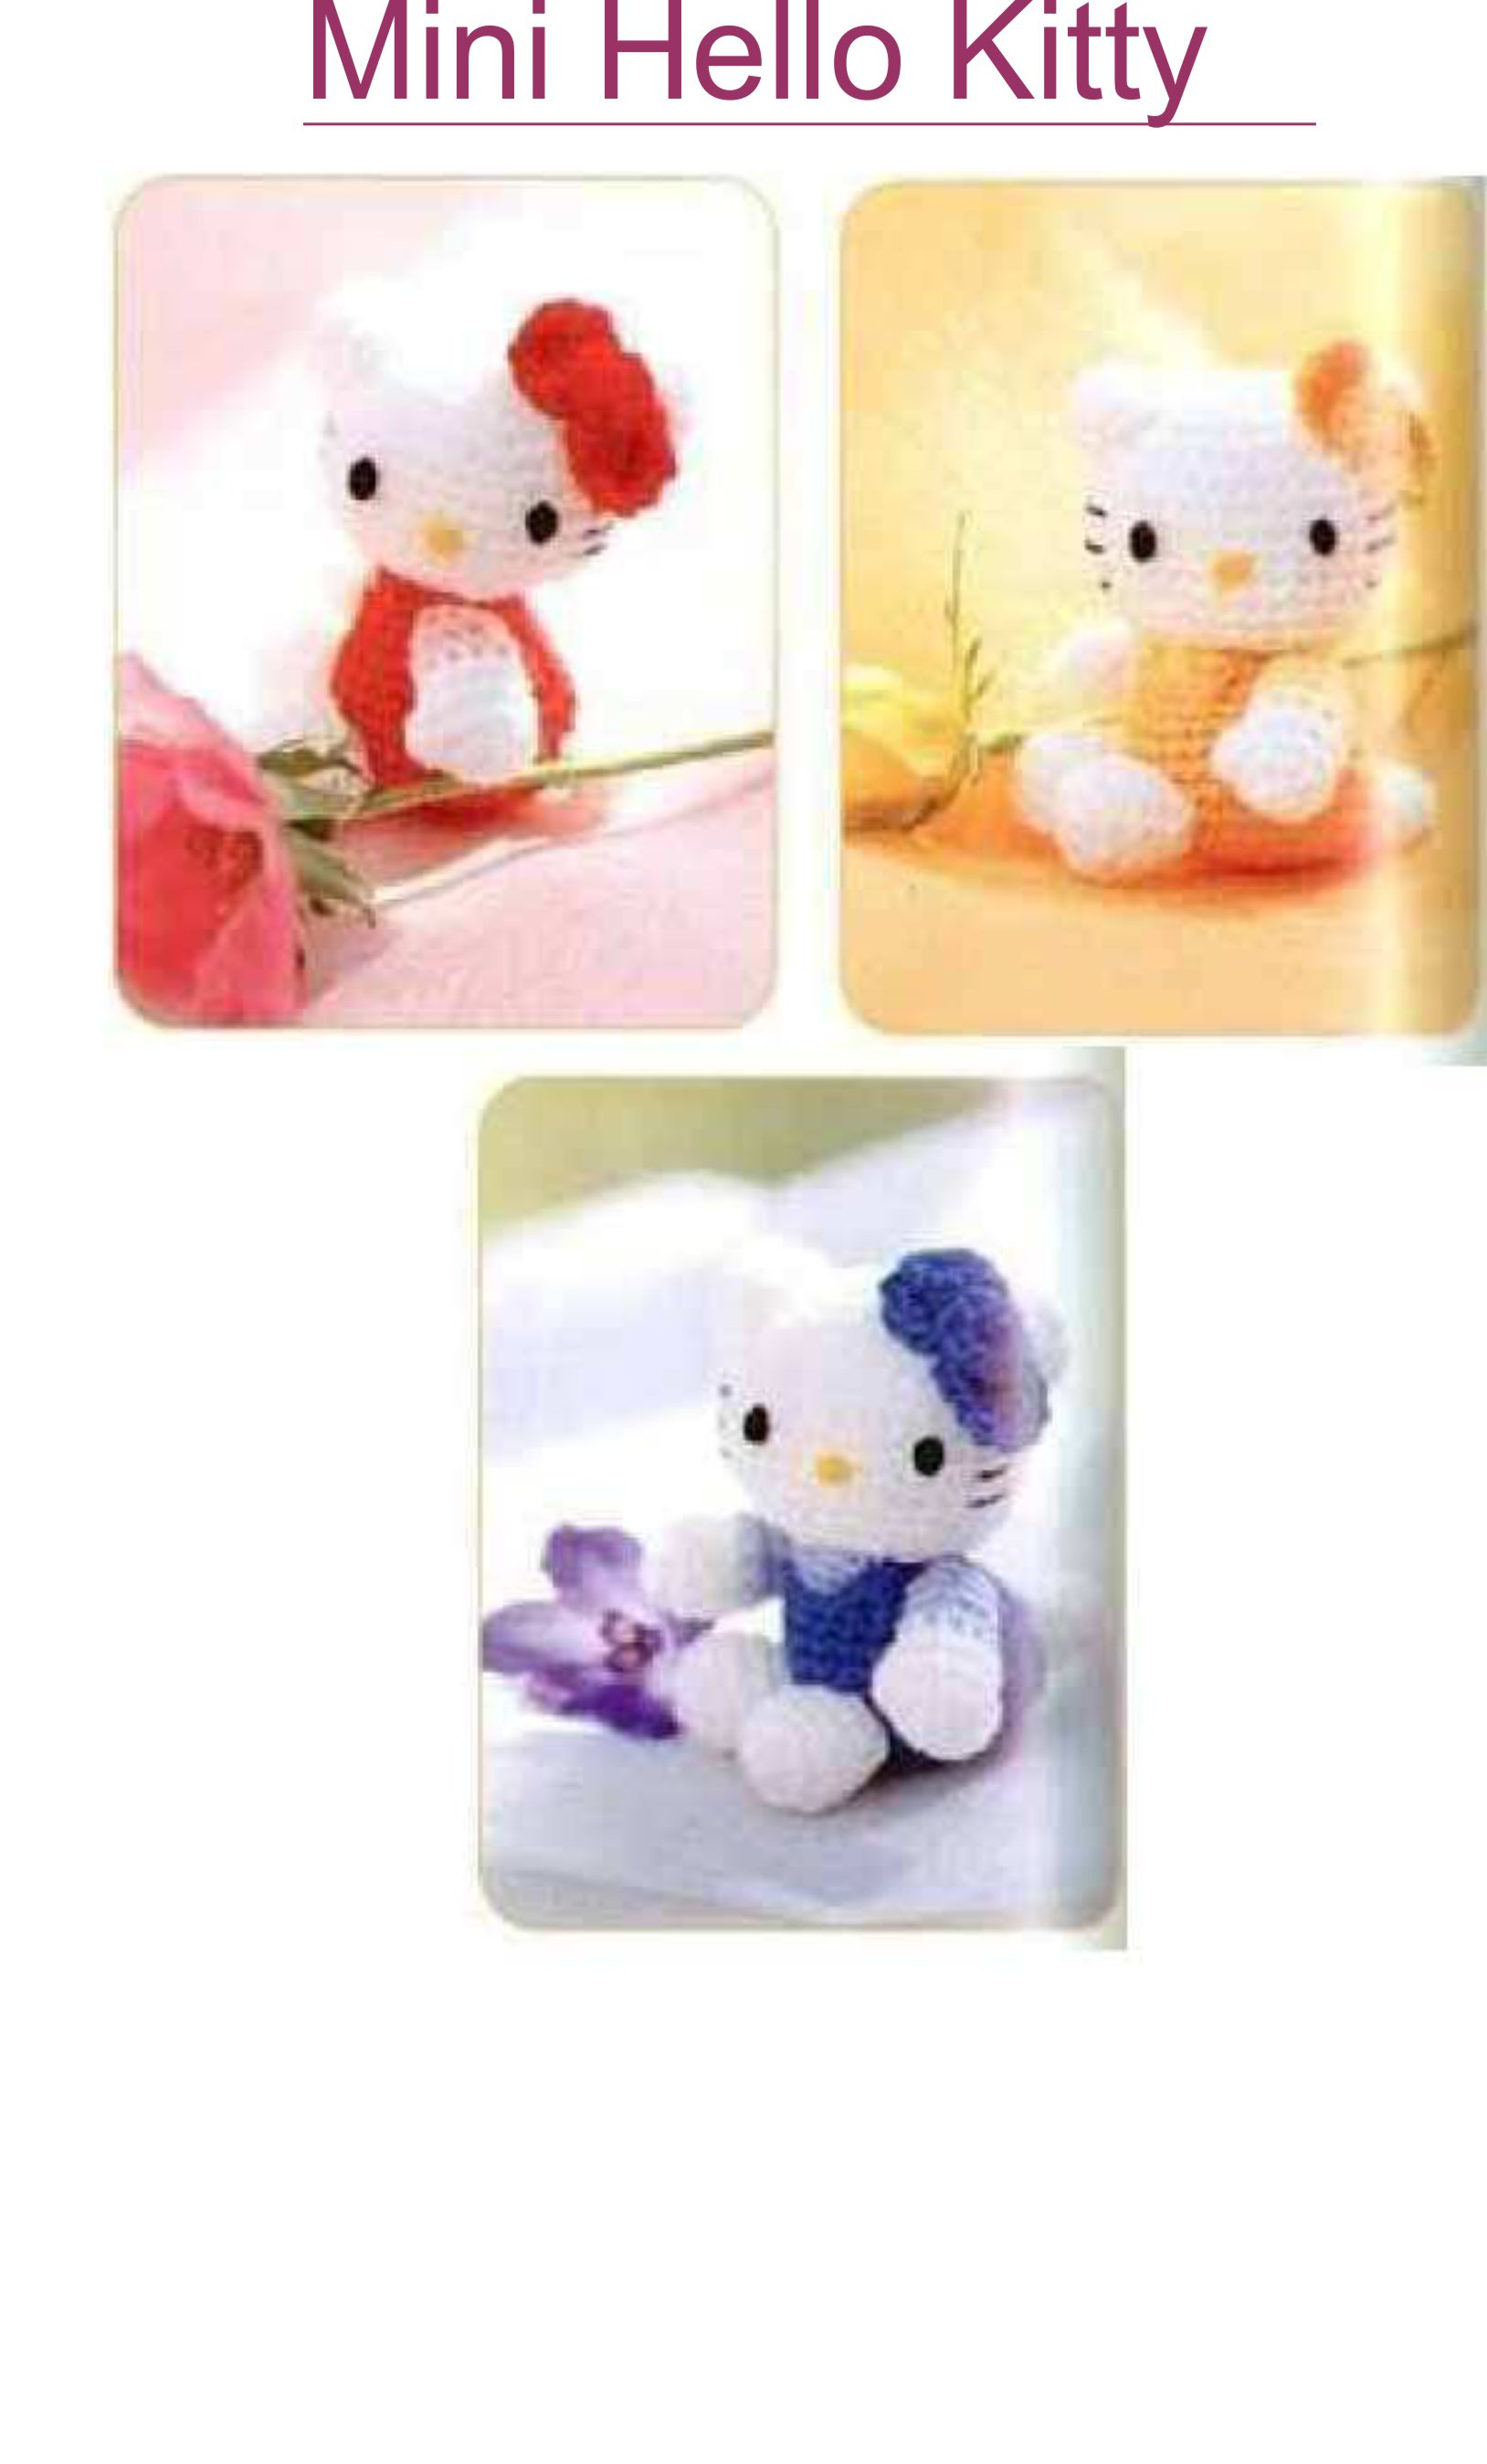 Crochet Hello Kitty free pattern amigurumi | Amigurumi Space | 2697x1628